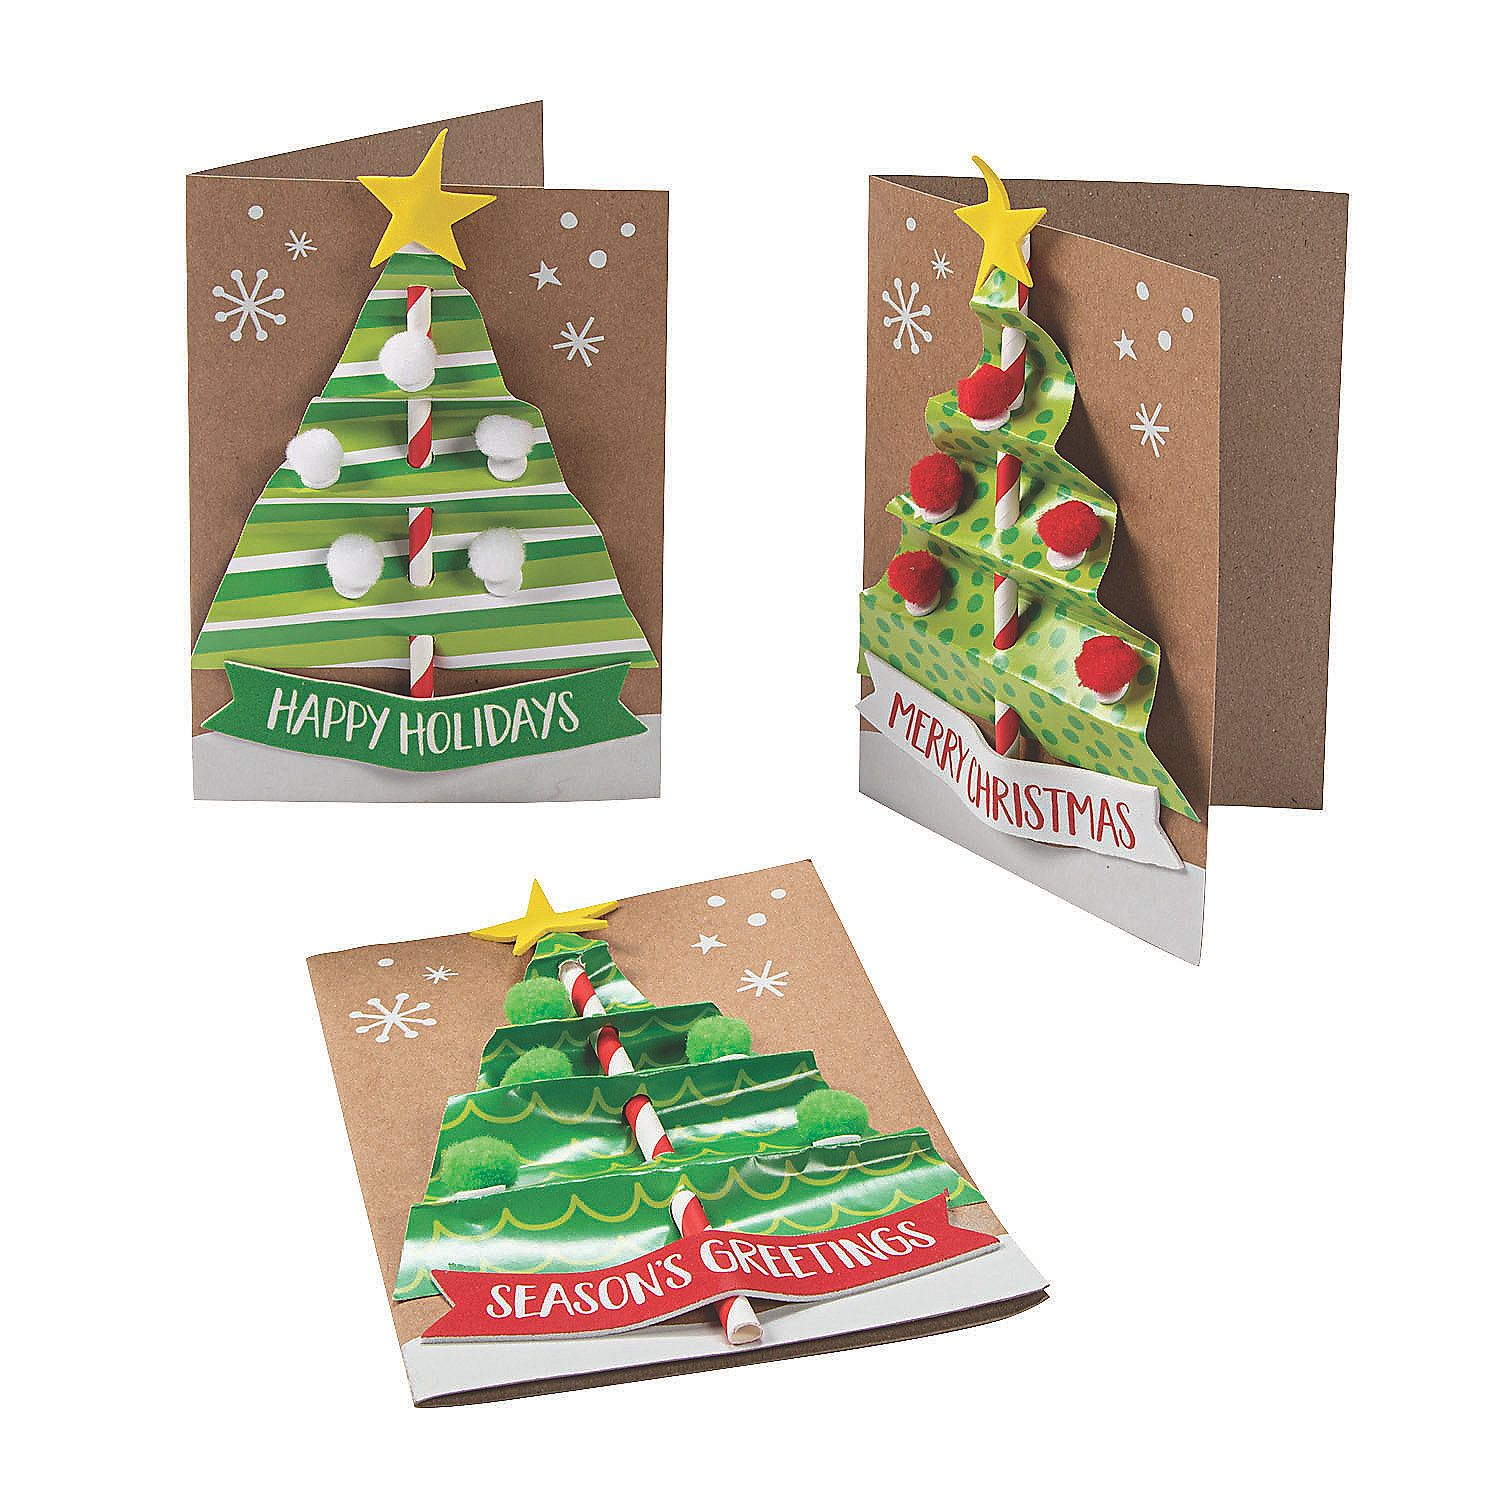 Christmas Tree Card Craft Kit Oriental Trading In 2020 Card Craft Kits Xmas Card Craft Christmas Tree Cards